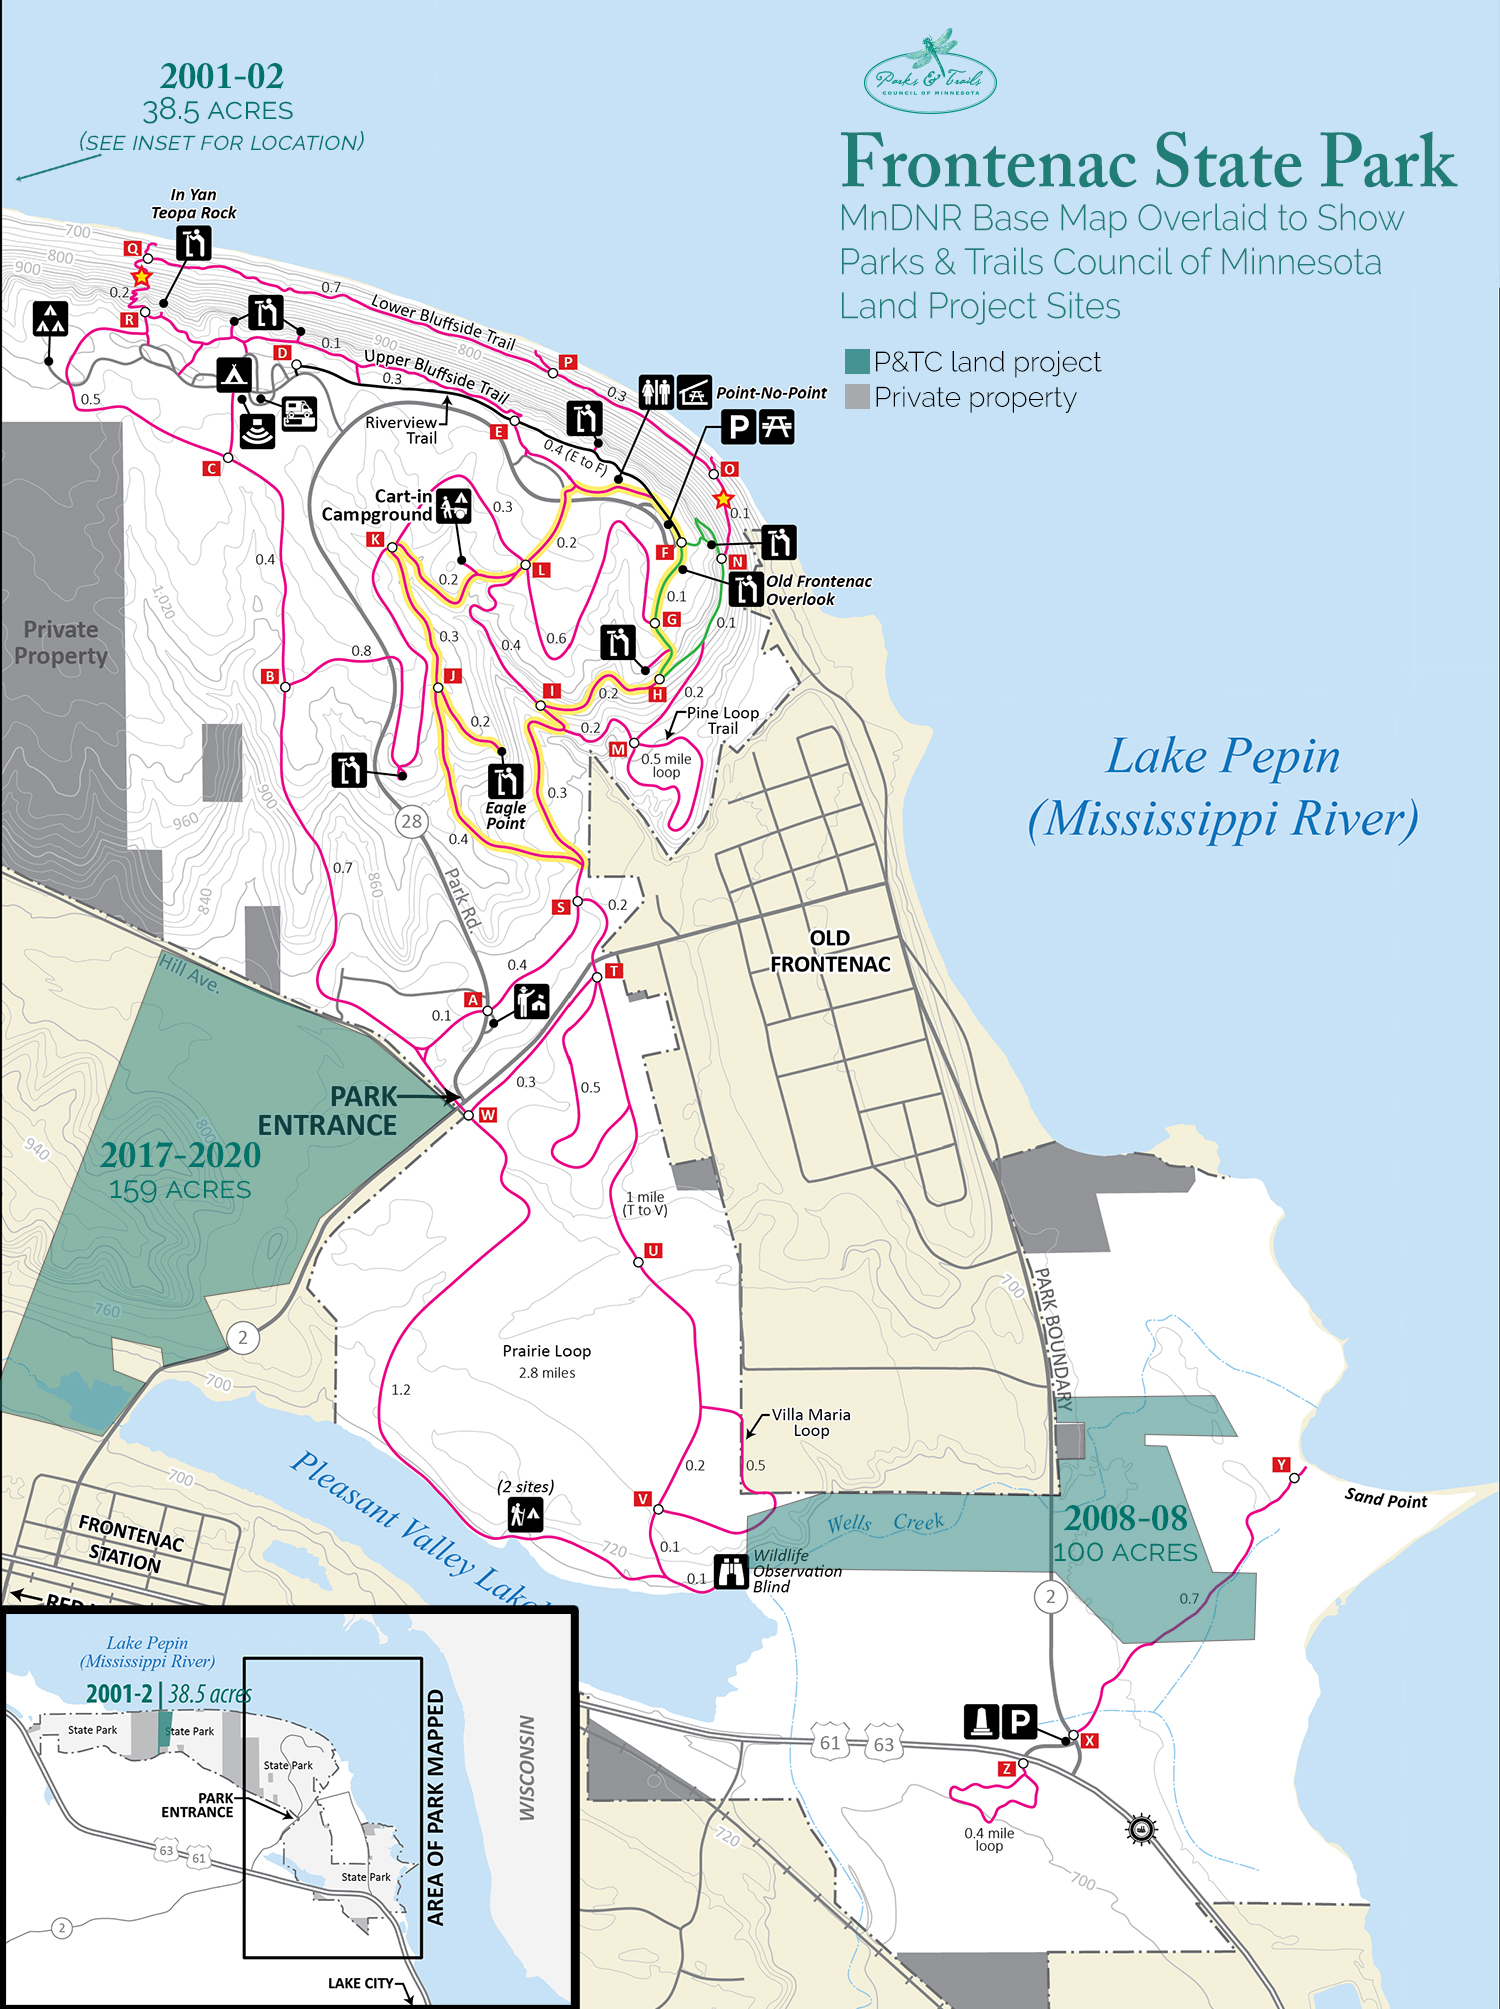 Map of Frontenac State Park showing P&TC projects